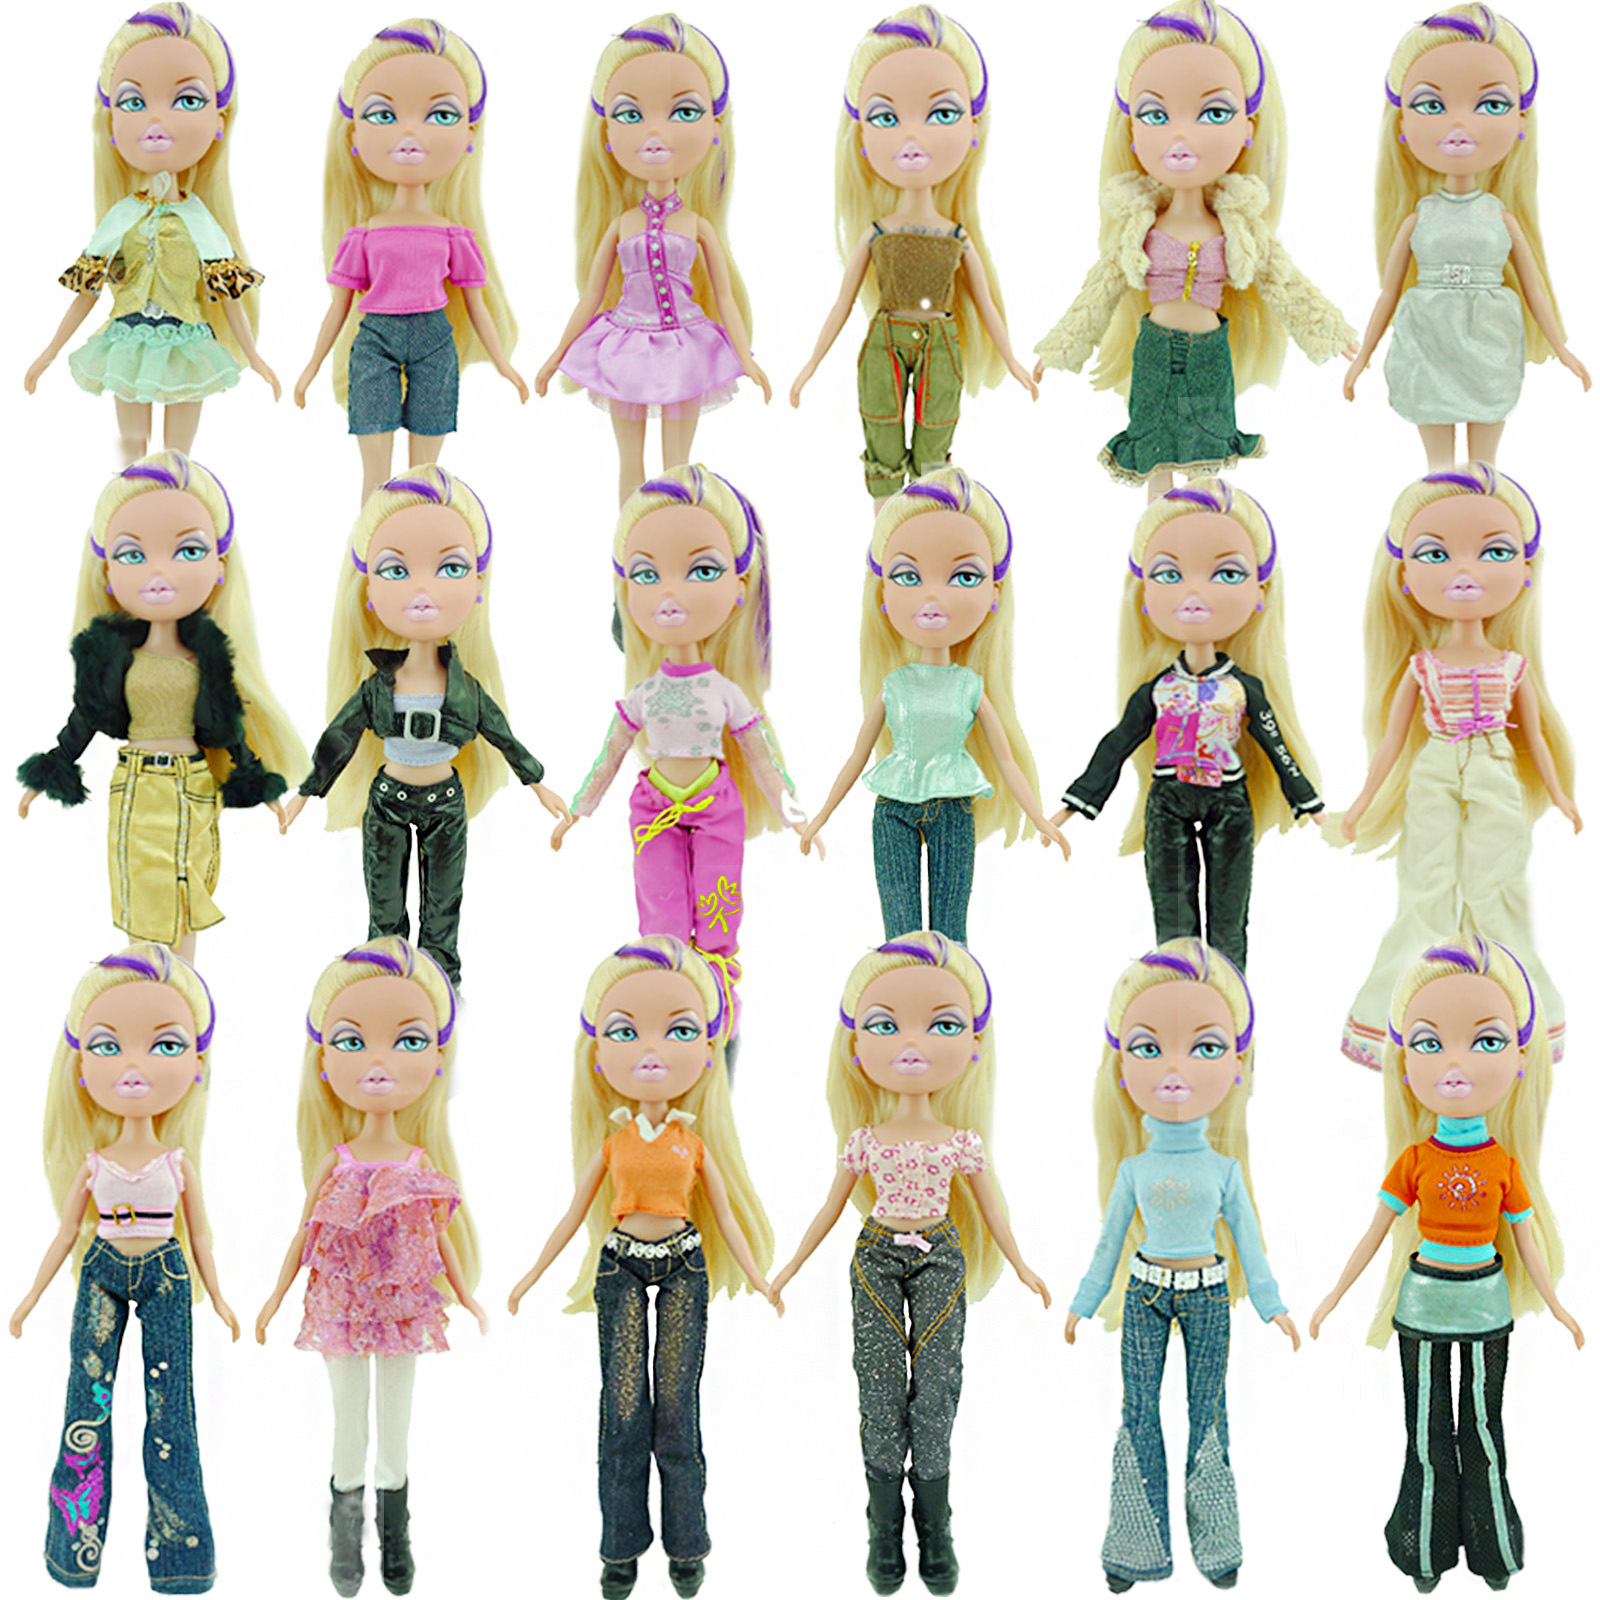 Random 1 Set Outfit Daily Casual Fashion Handmade Trousers Skirt Shirt Vest Coat Dress Clothing Clothes For Bratz 10 In. Doll